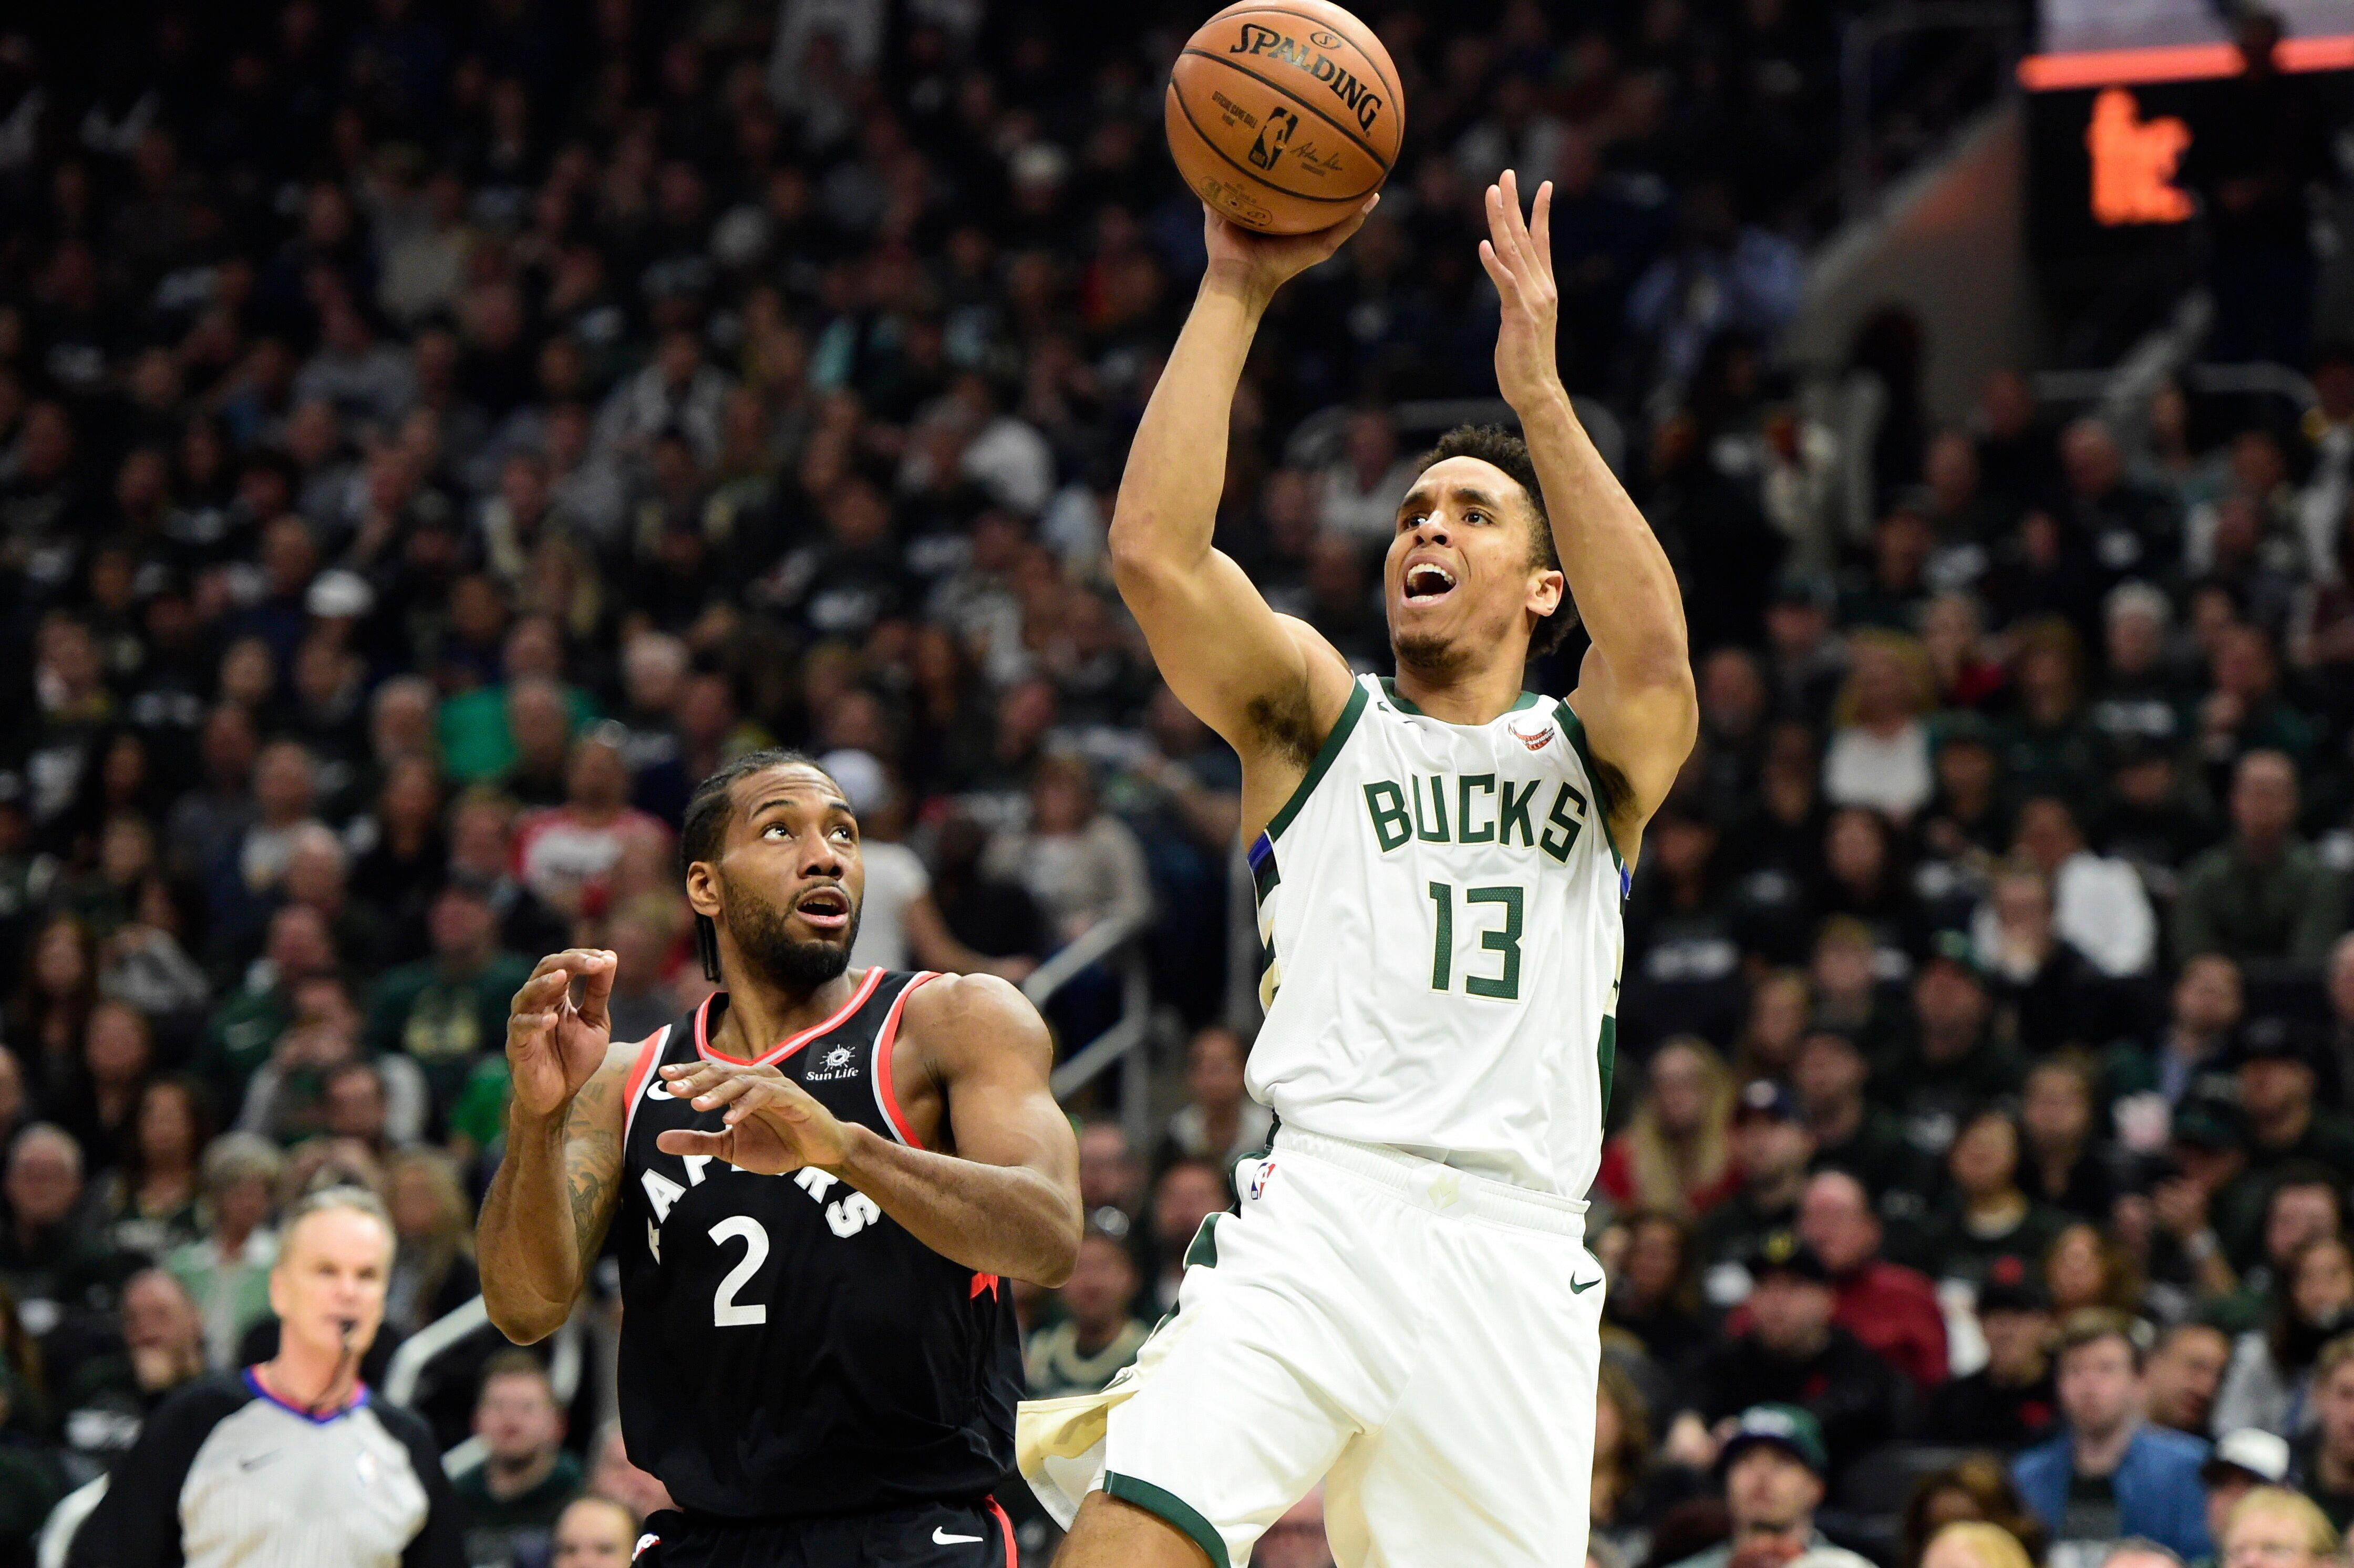 Charles Barkley donated $45,000 to Malcolm Brogdon's charity to build clean water well in East Africa